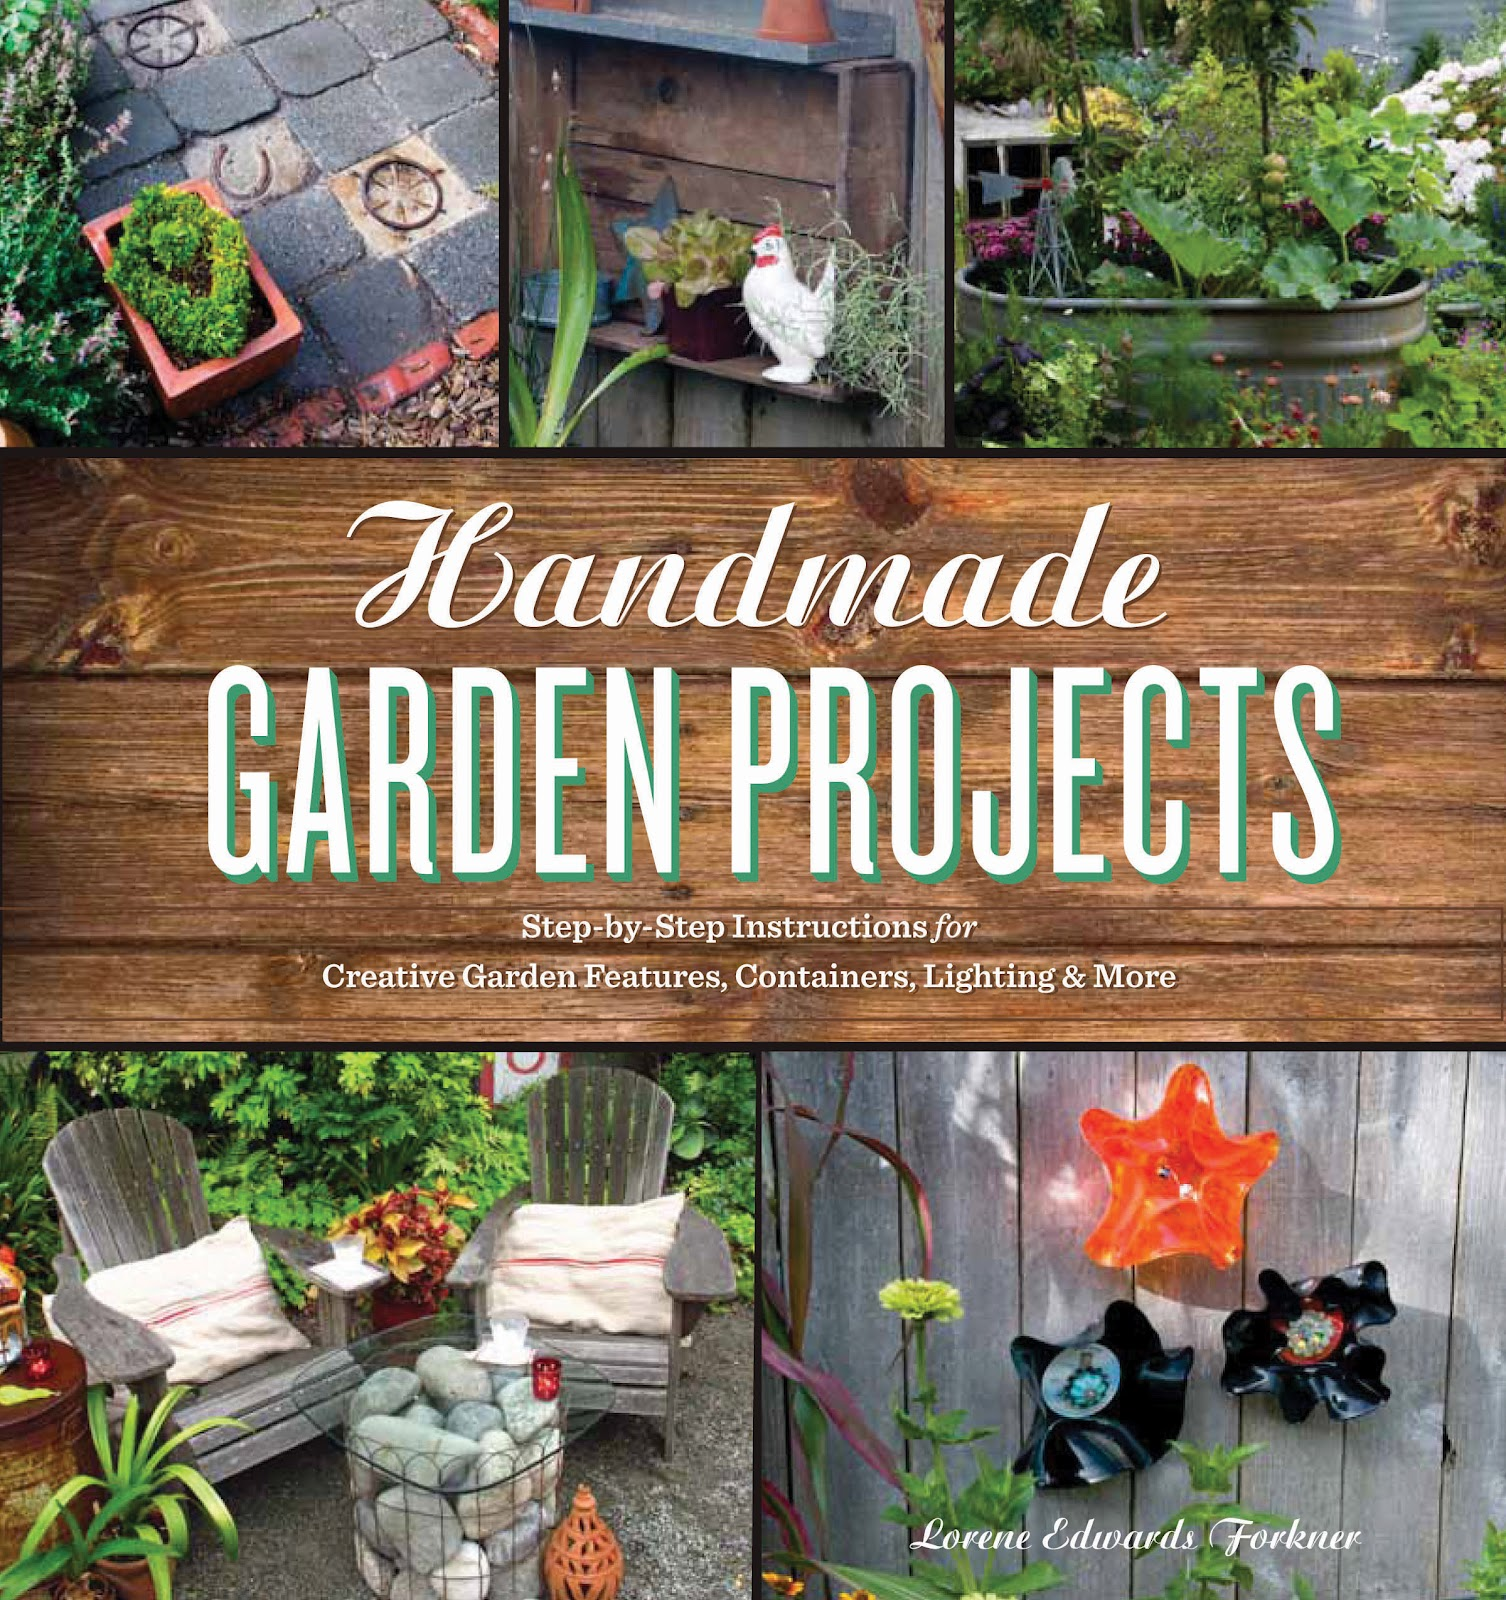 Danger garden handmade garden projects a book review for Garden design workbook